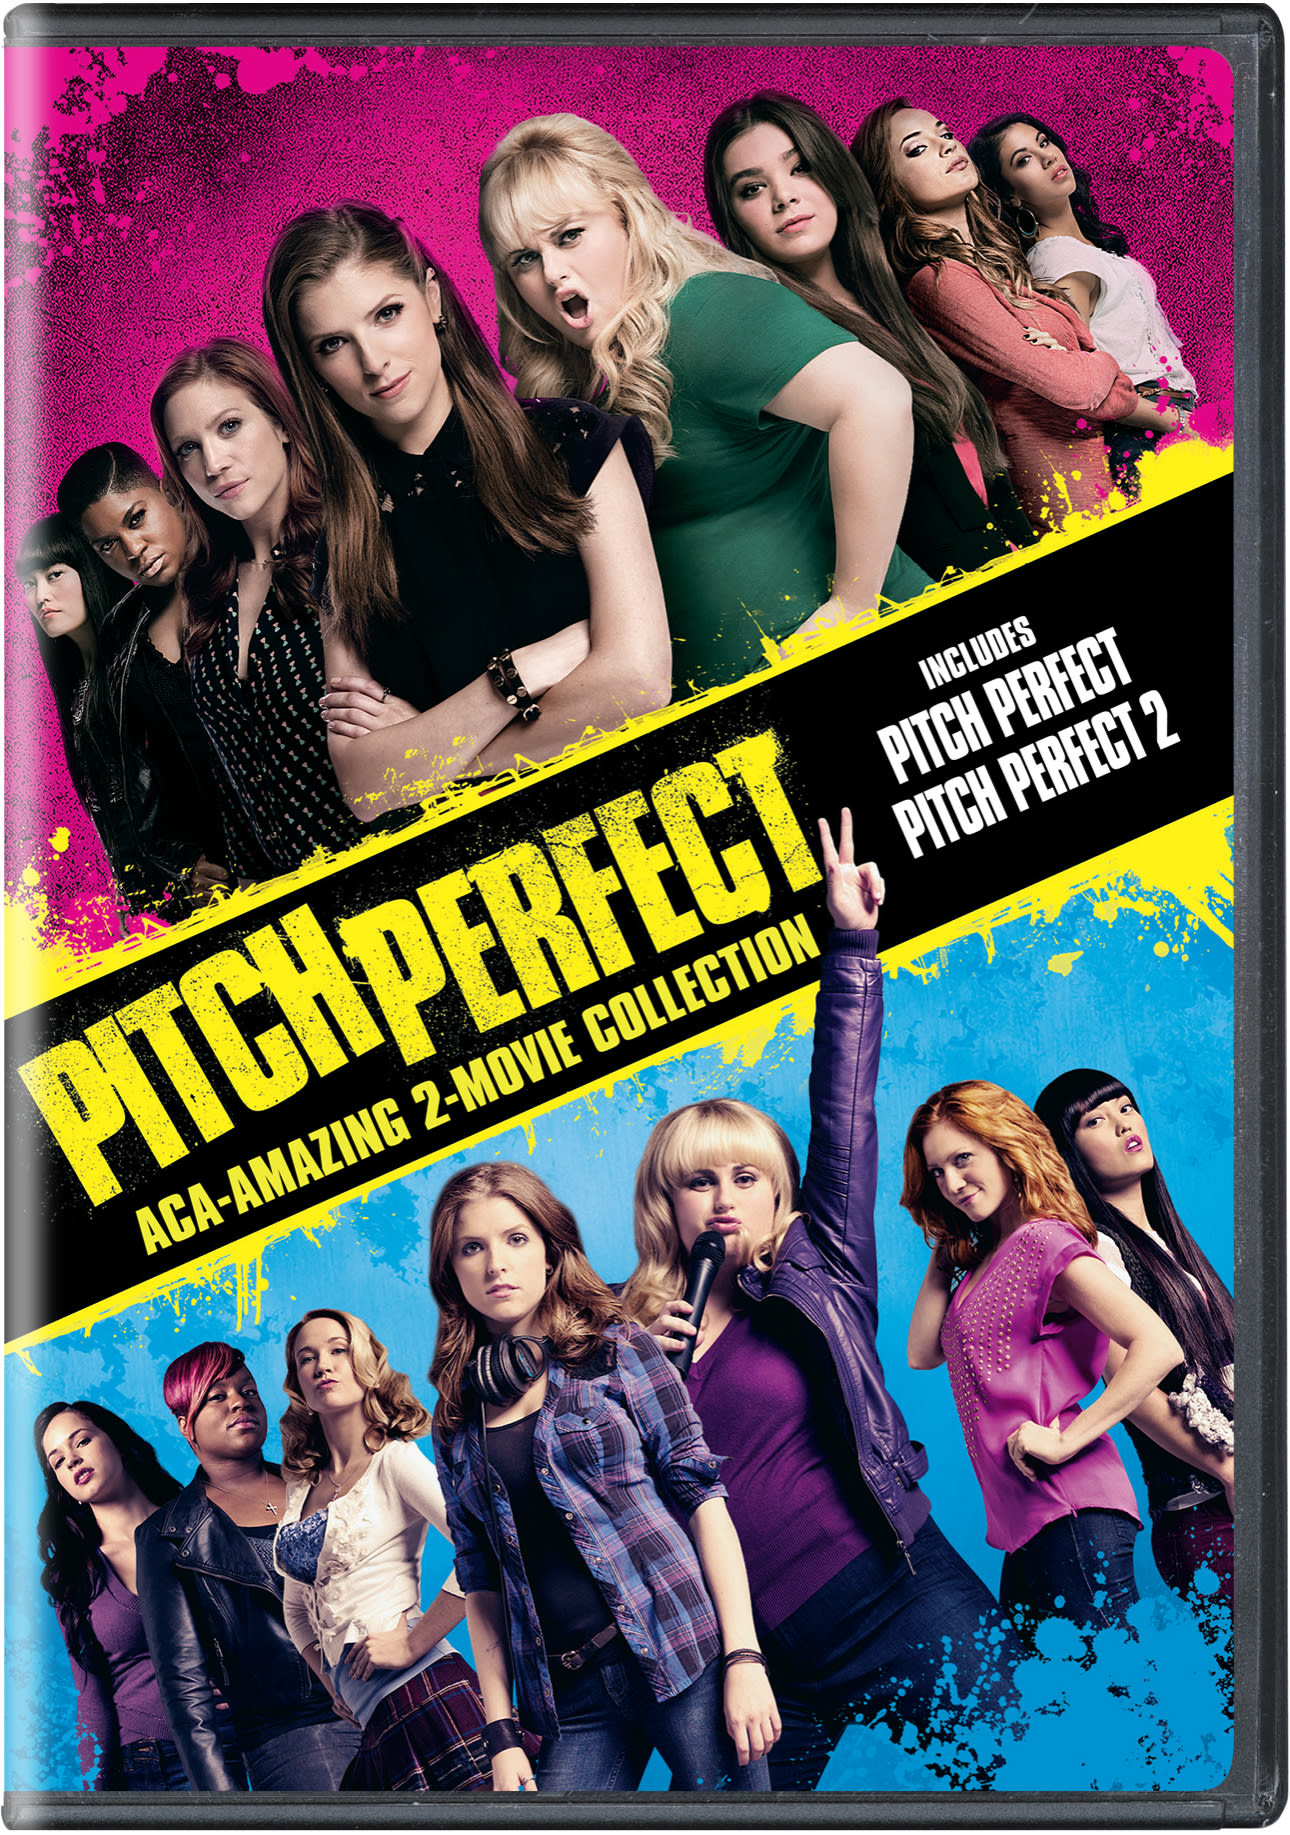 Pitch Perfect/Pitch Perfect 2 [DVD]